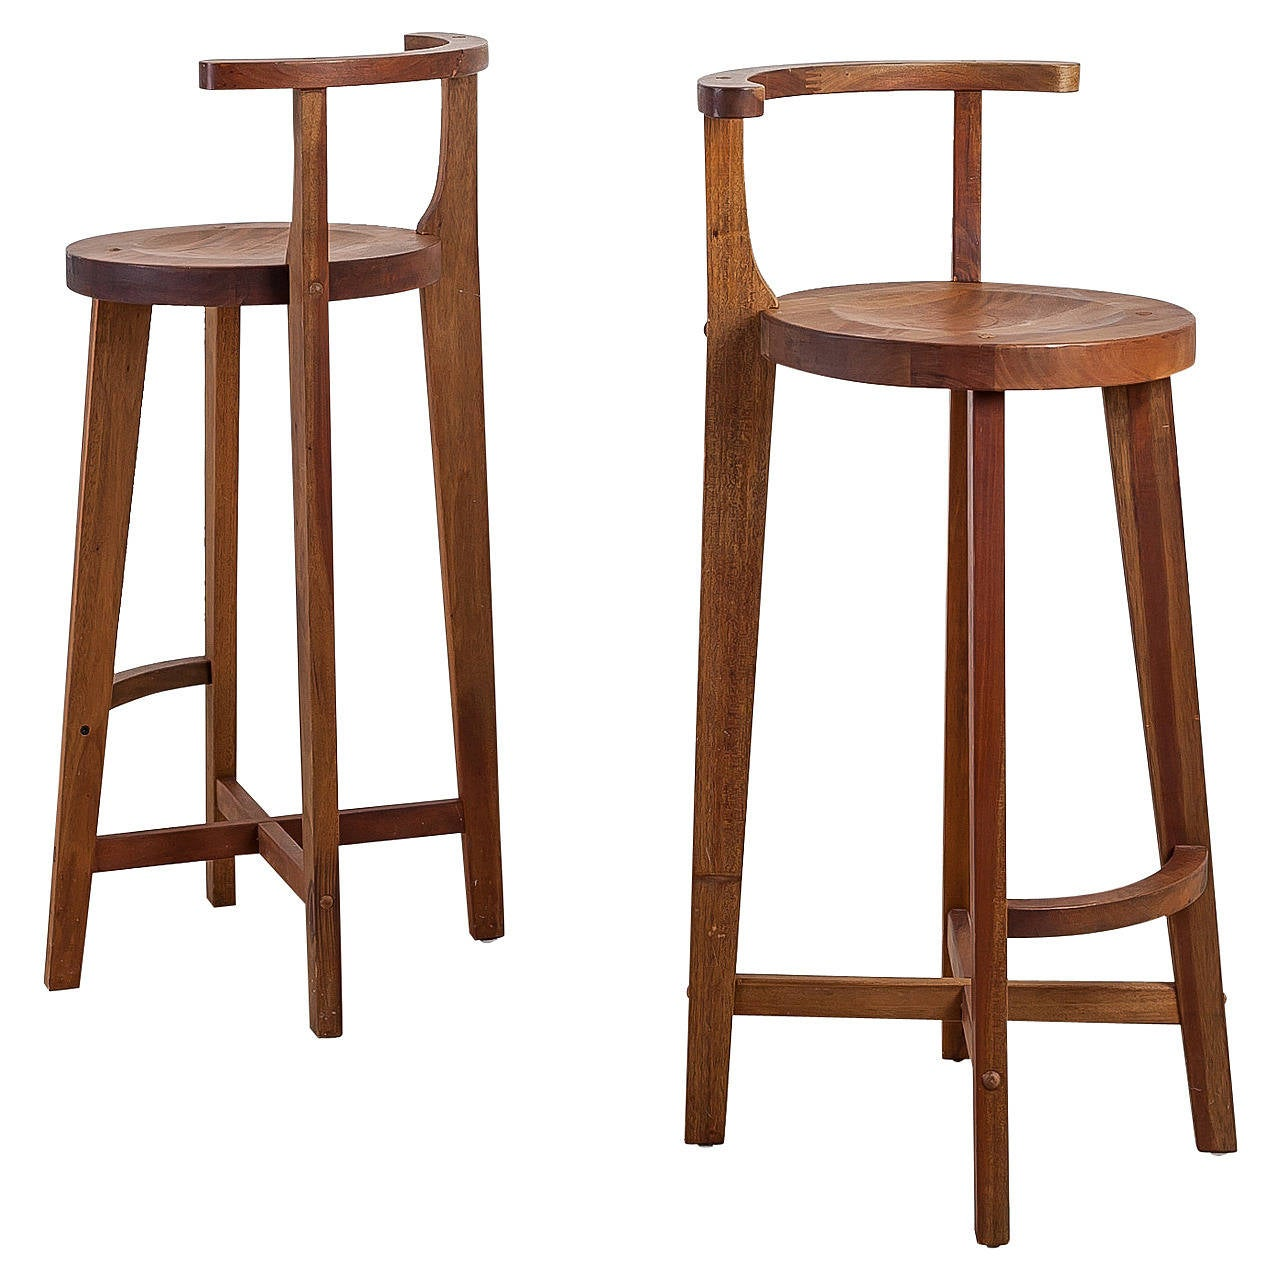 pair studio crafted wooden bar stools with rounded back rests for sale at 1stdibs. Black Bedroom Furniture Sets. Home Design Ideas